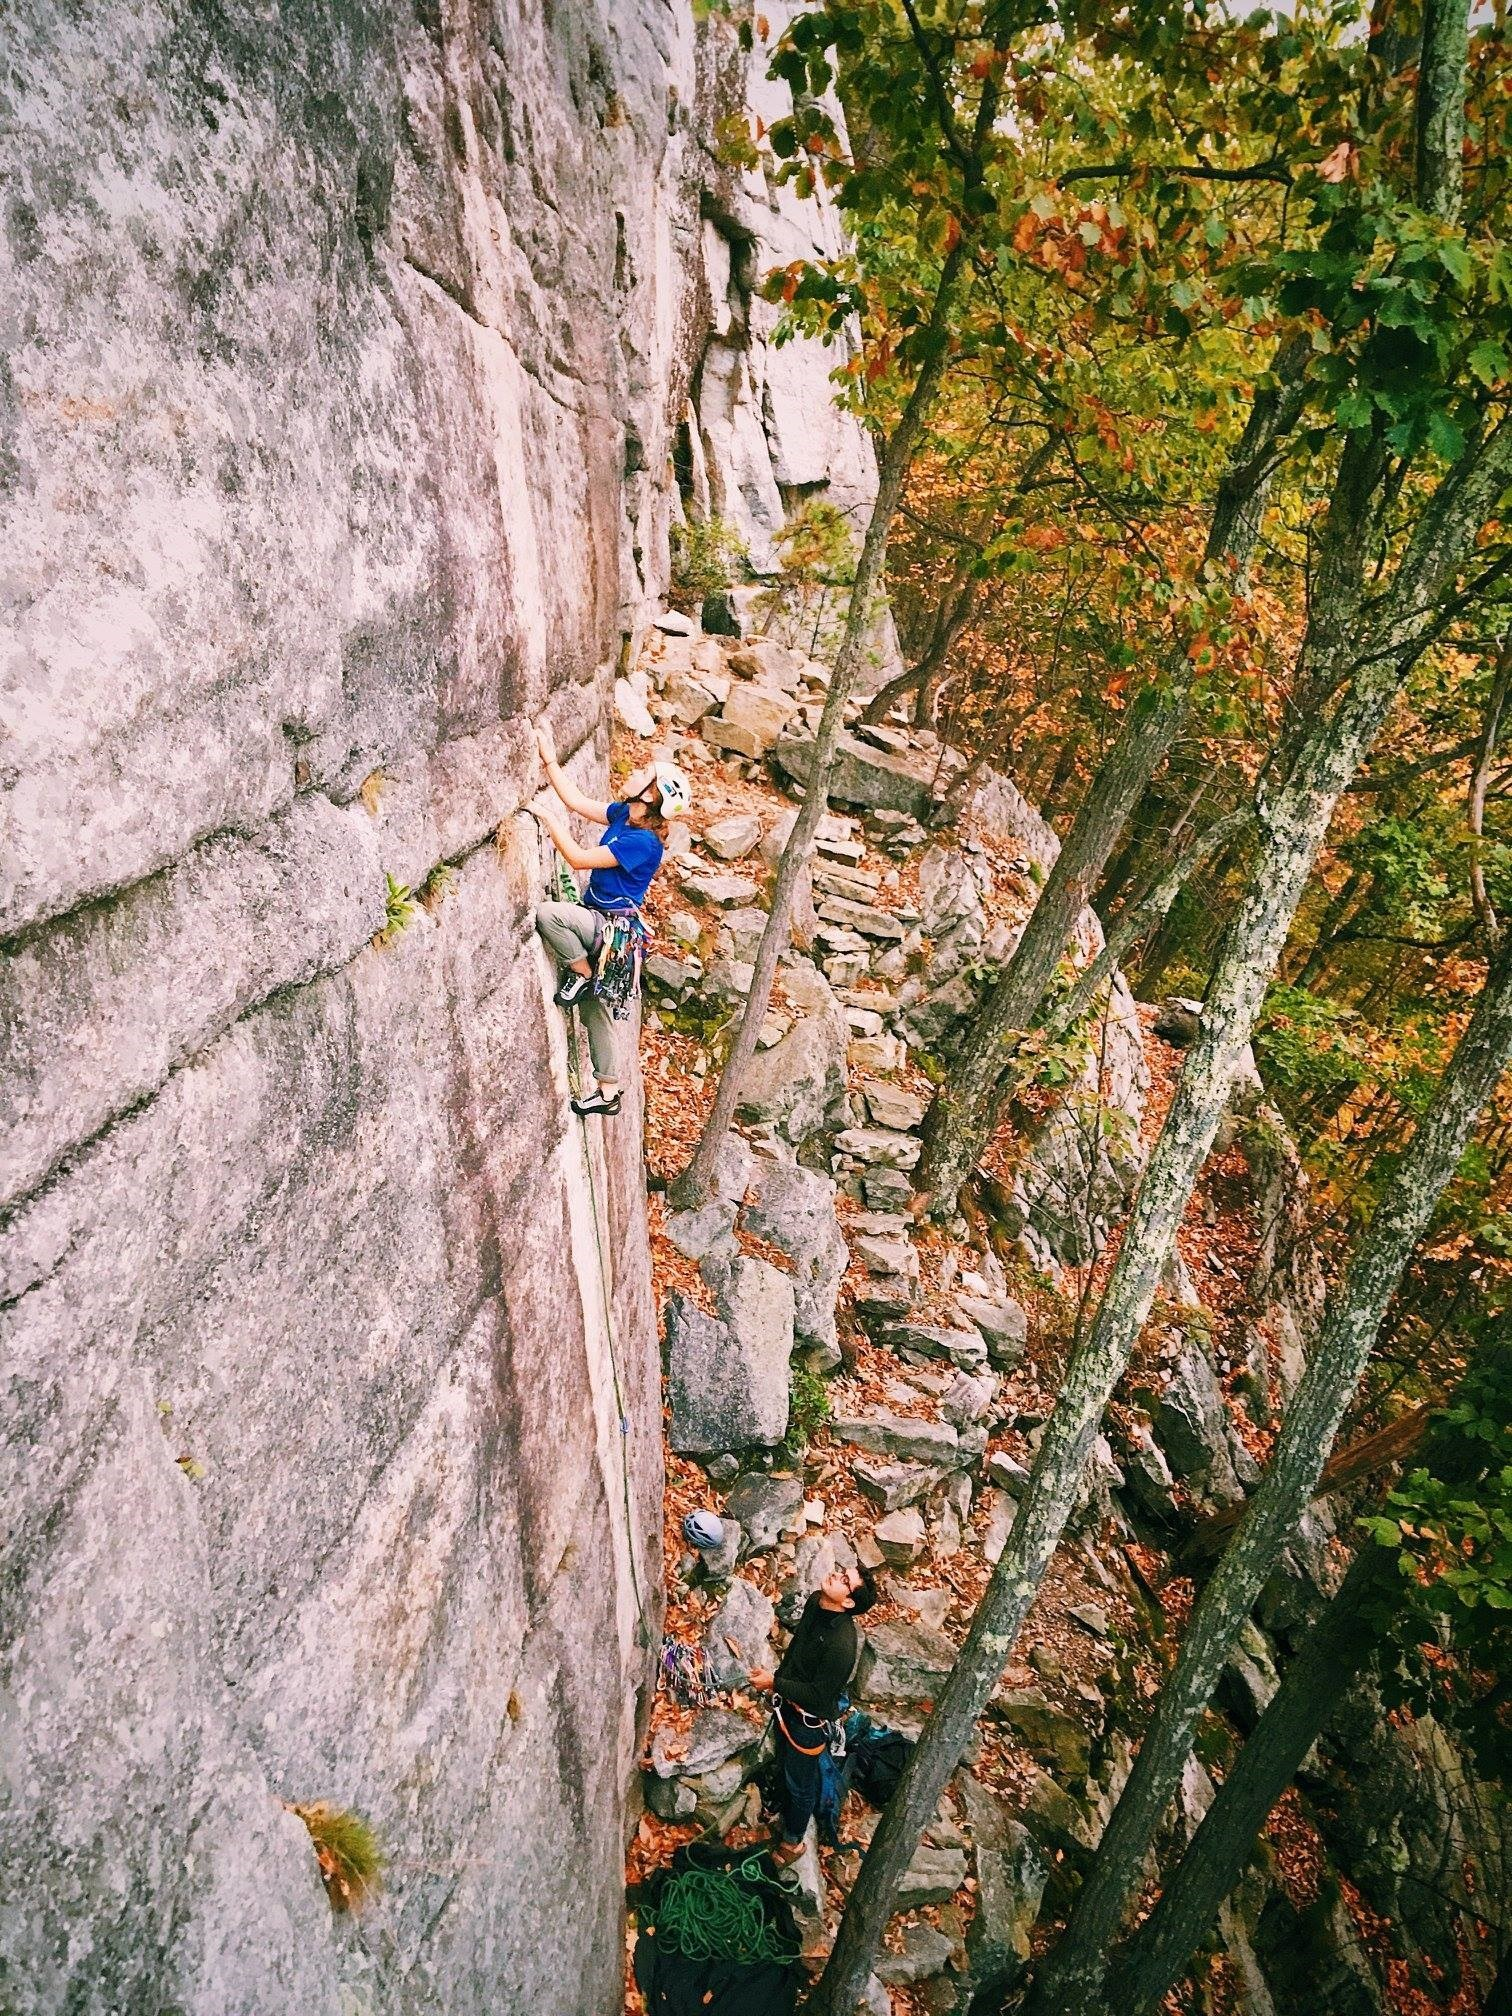 Emily Shertzer with Marco climbing Never Never Land in the Gunks.